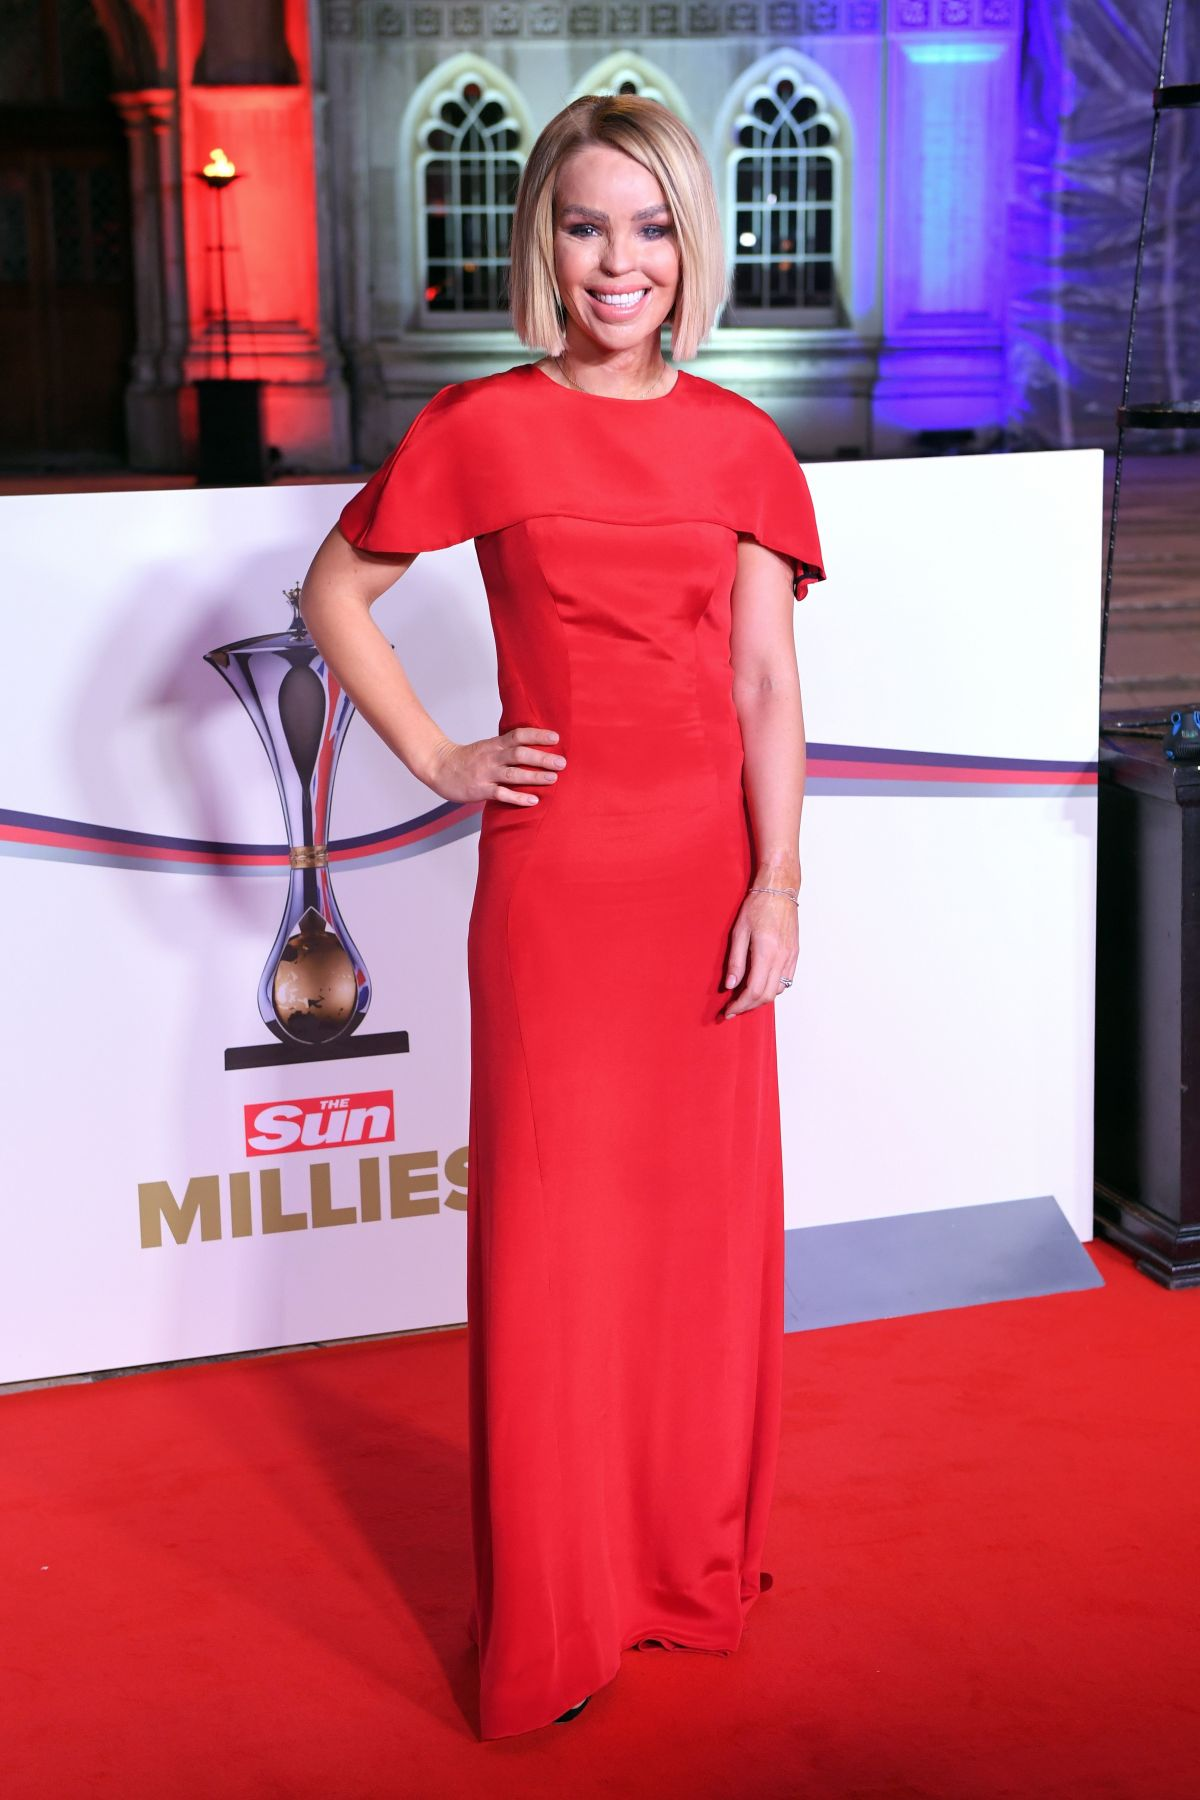 KATIE PIPER at The Sun Military Awards in London 12/14/2016